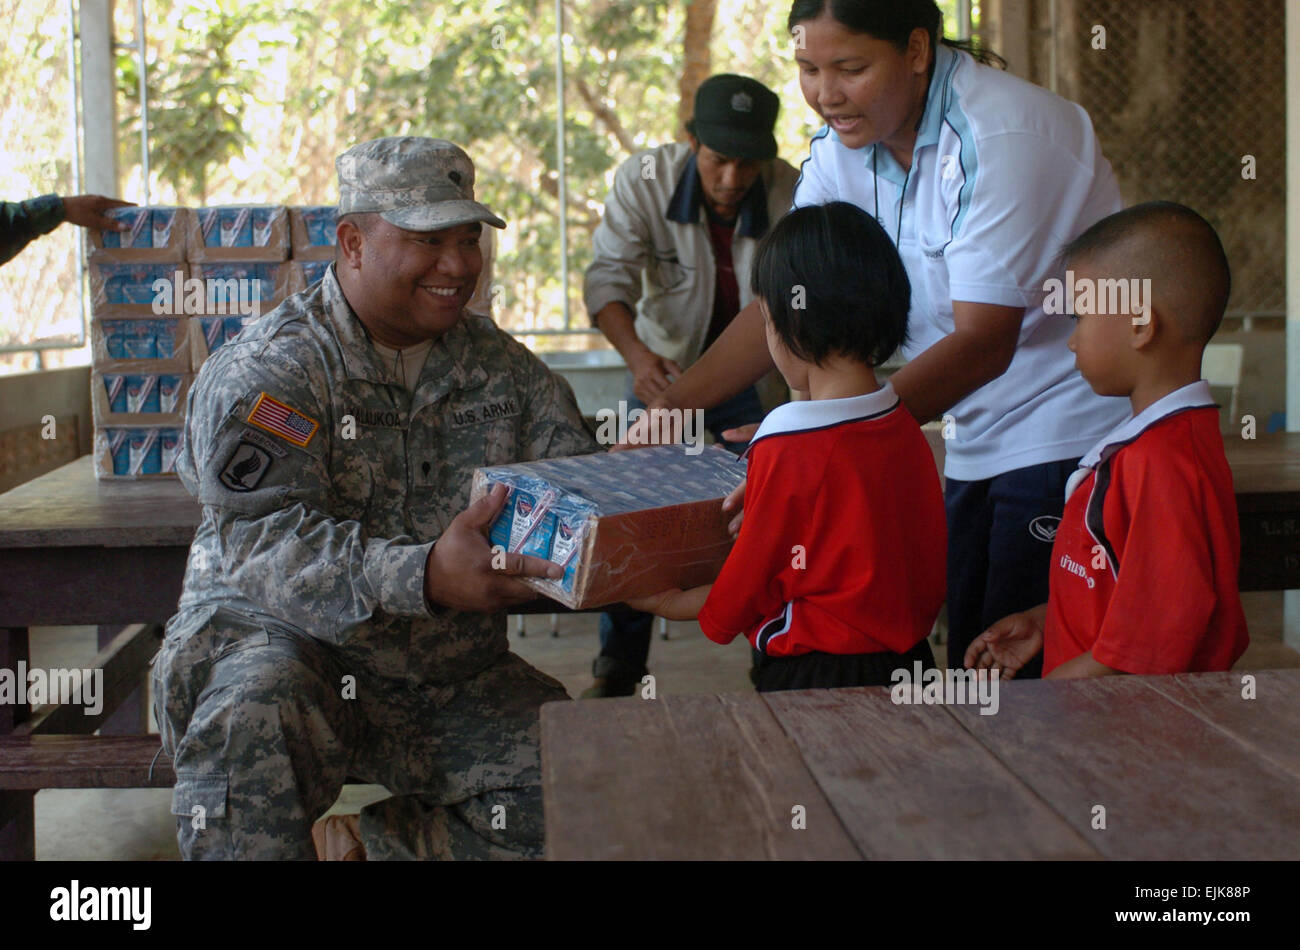 Spc. Andrew Kalaukoa of Makaha, Hawaii, distributes milk to the children of the Ban Pong Wua School in rural Thailand - Stock Image